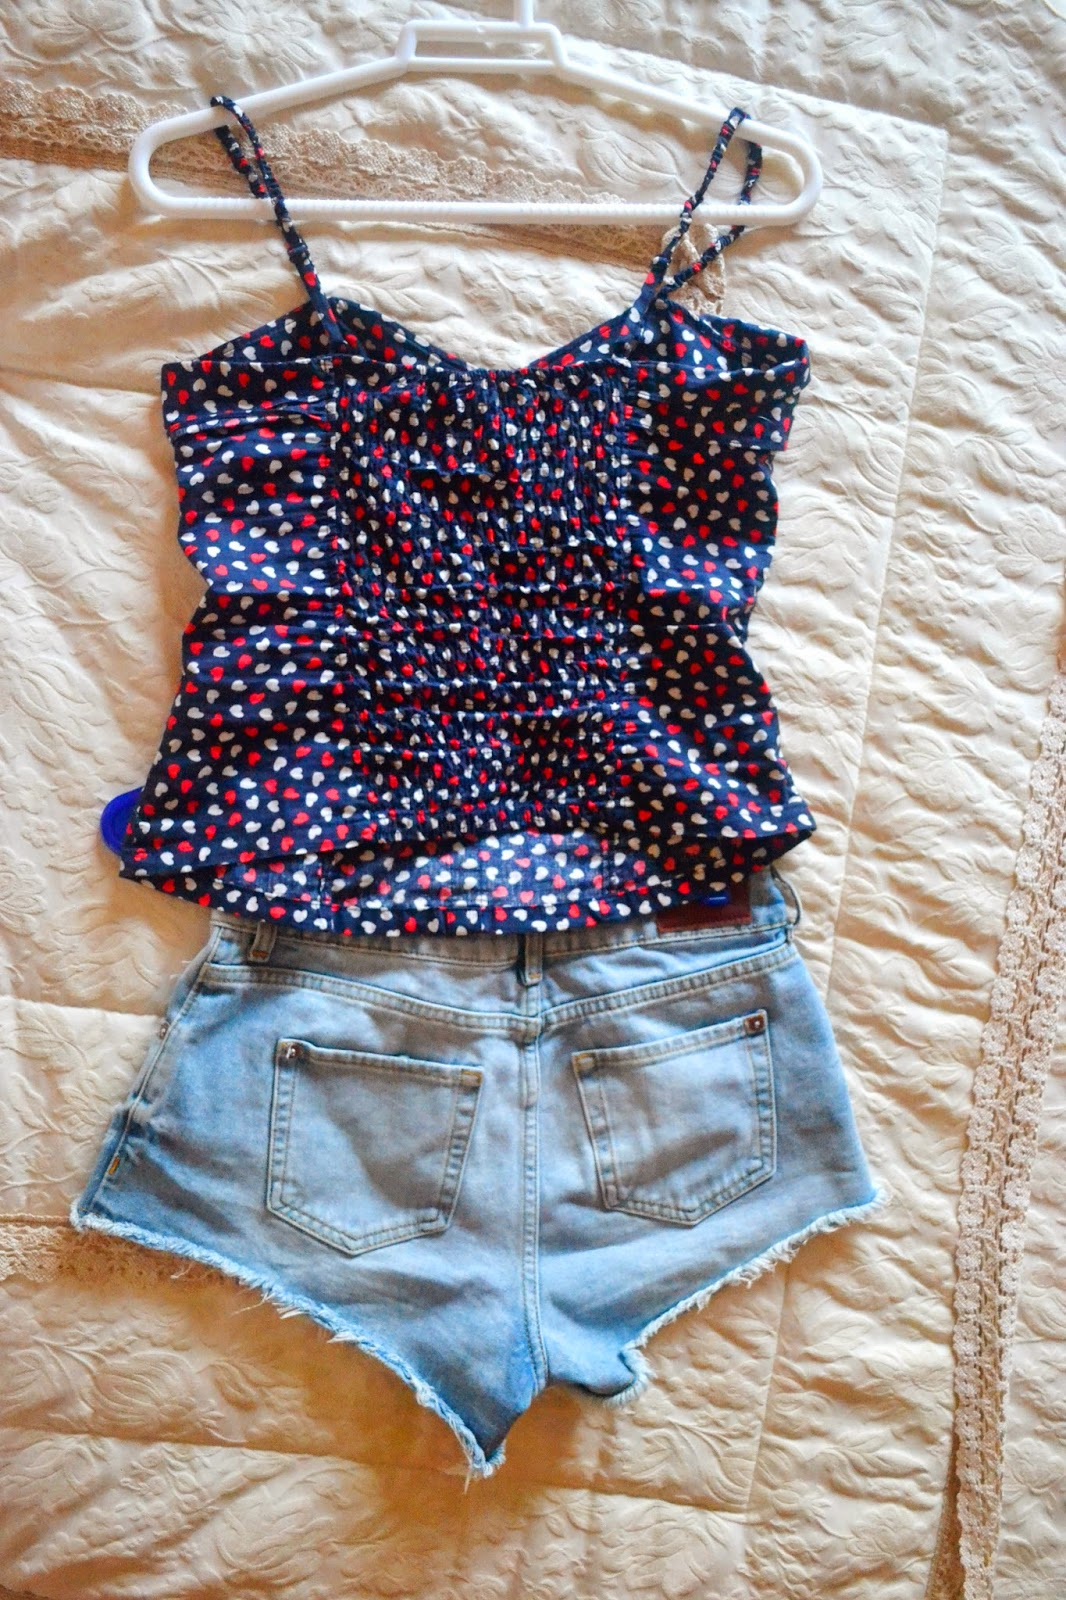 Shorts and top for spring